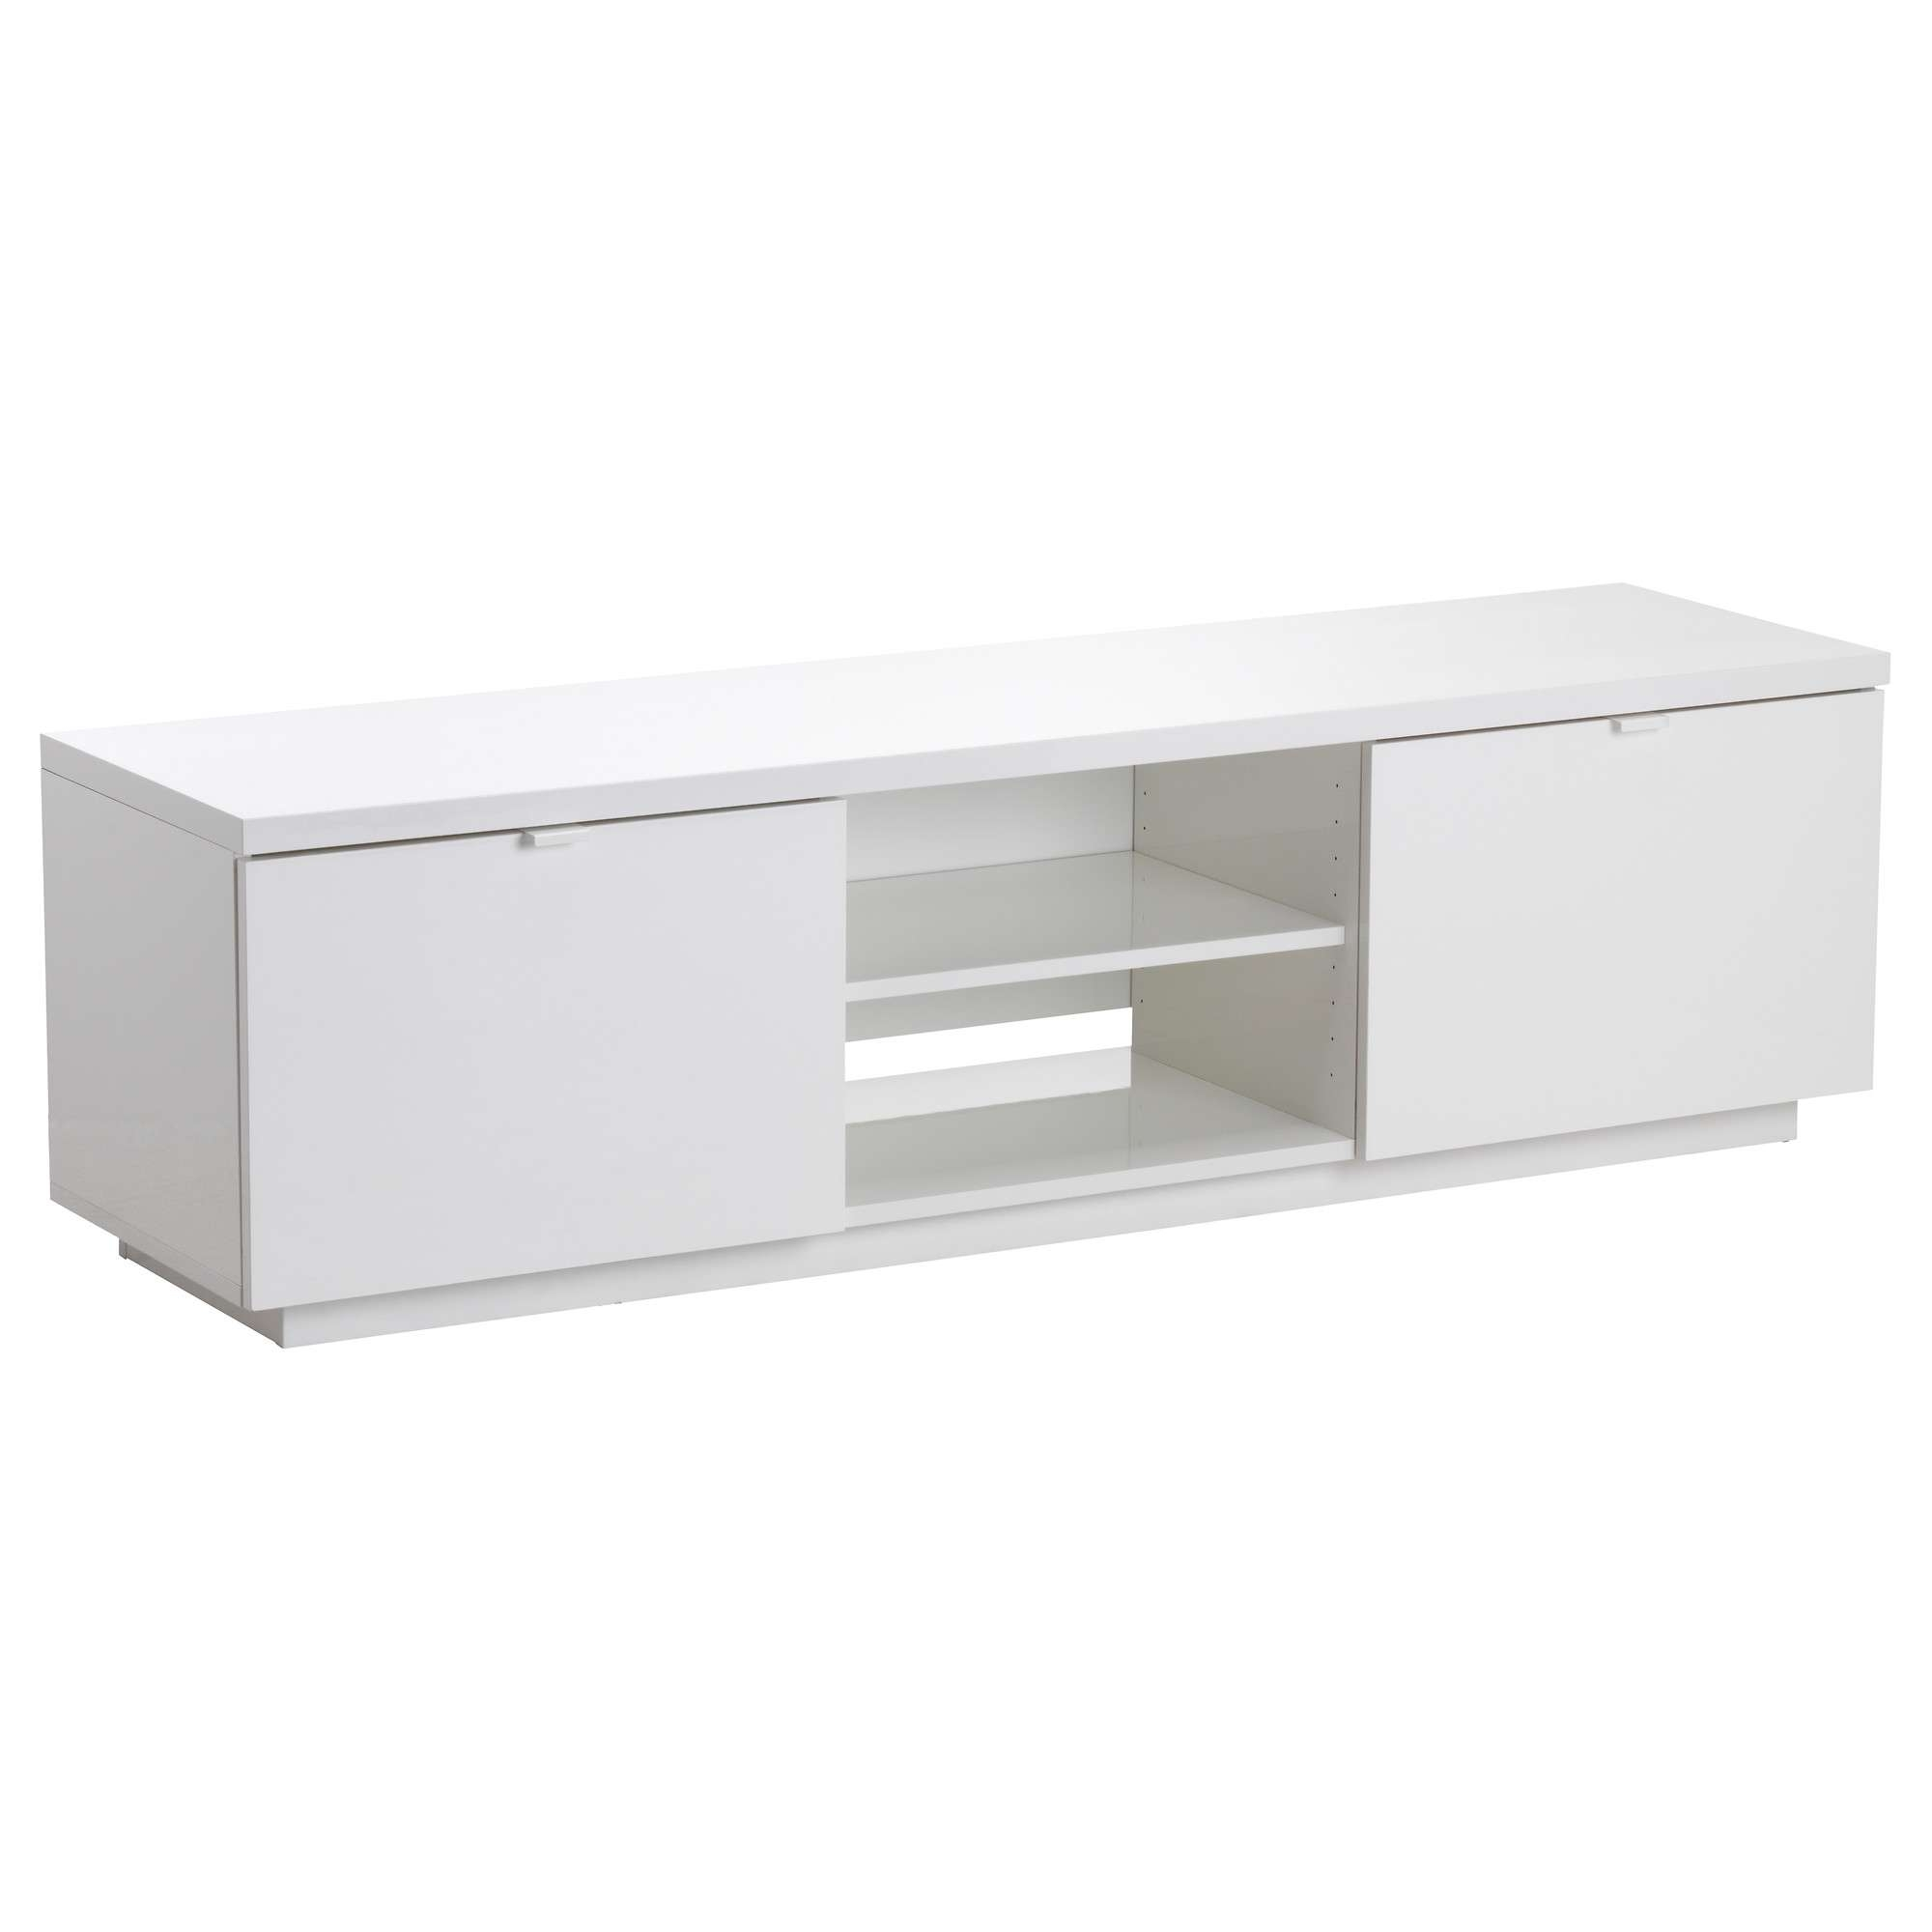 Byås Tv Unit – Ikea Inside White High Gloss Tv Stands (View 5 of 15)